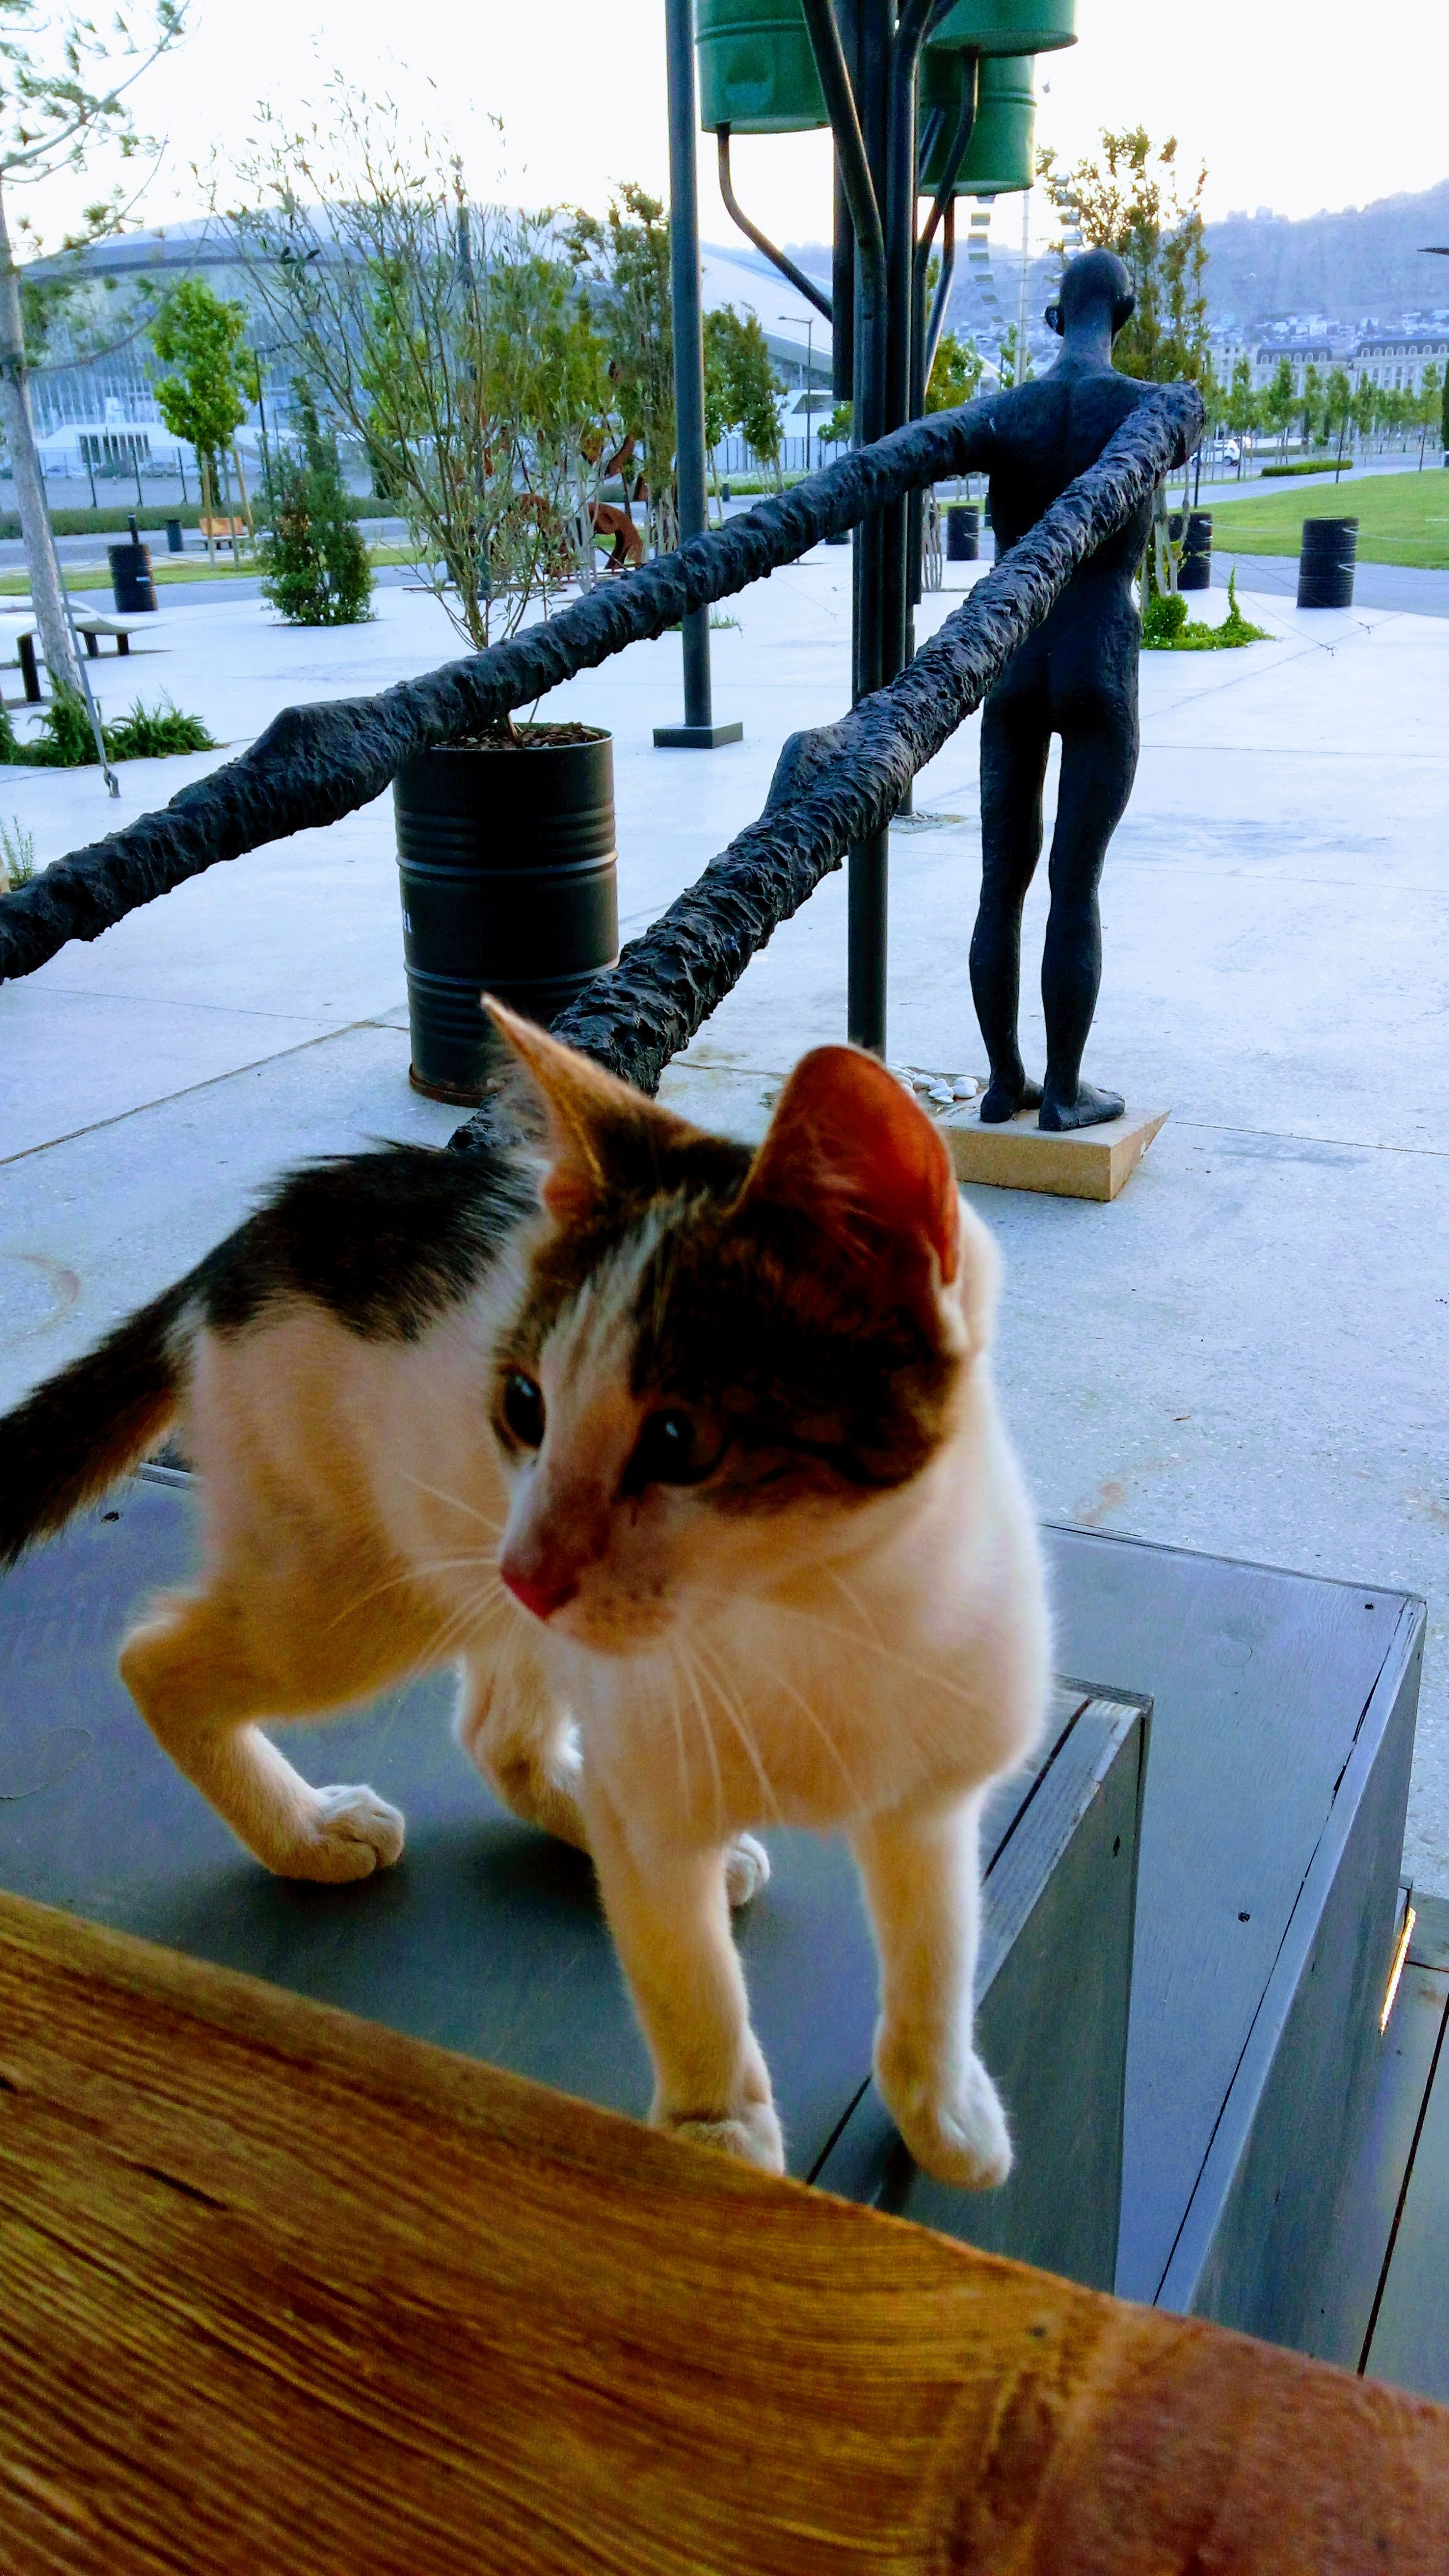 Domestic Animals Animal Themes One Animal Outdoors No People Barrel Playground Wandering Cat